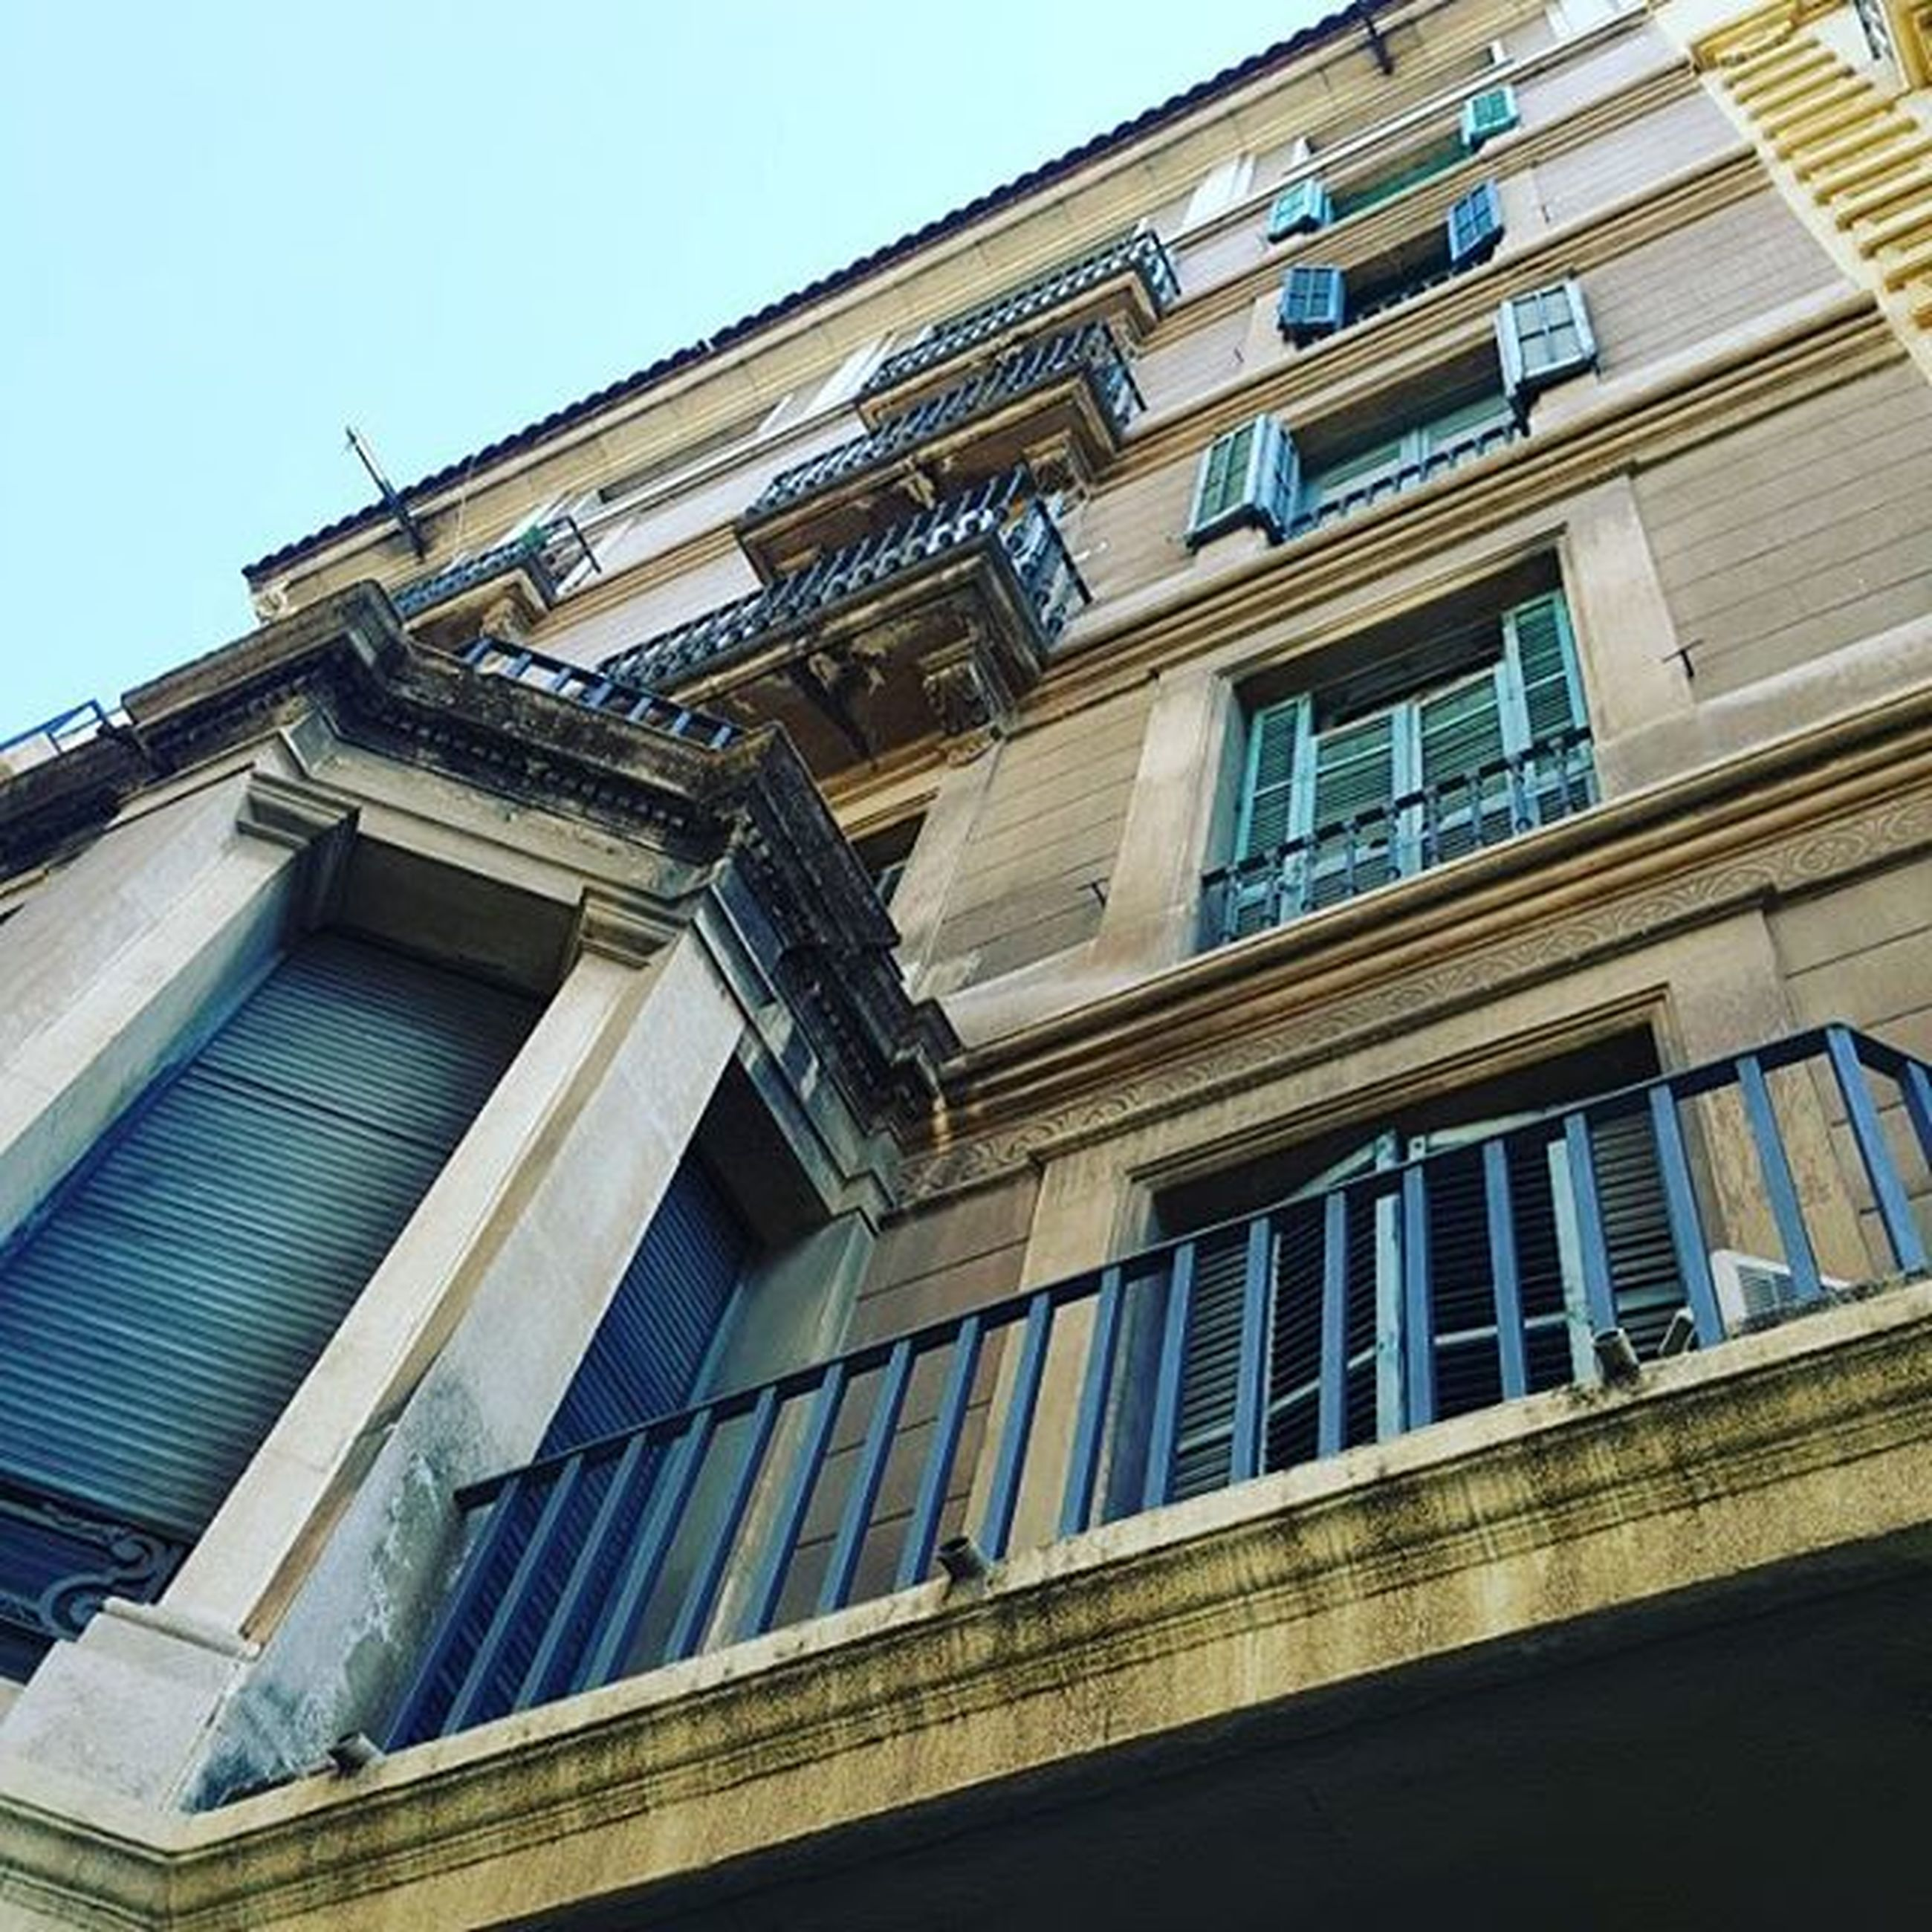 architecture, building exterior, built structure, low angle view, window, building, residential building, facade, residential structure, city, clear sky, sky, balcony, outdoors, day, no people, blue, exterior, sunlight, house